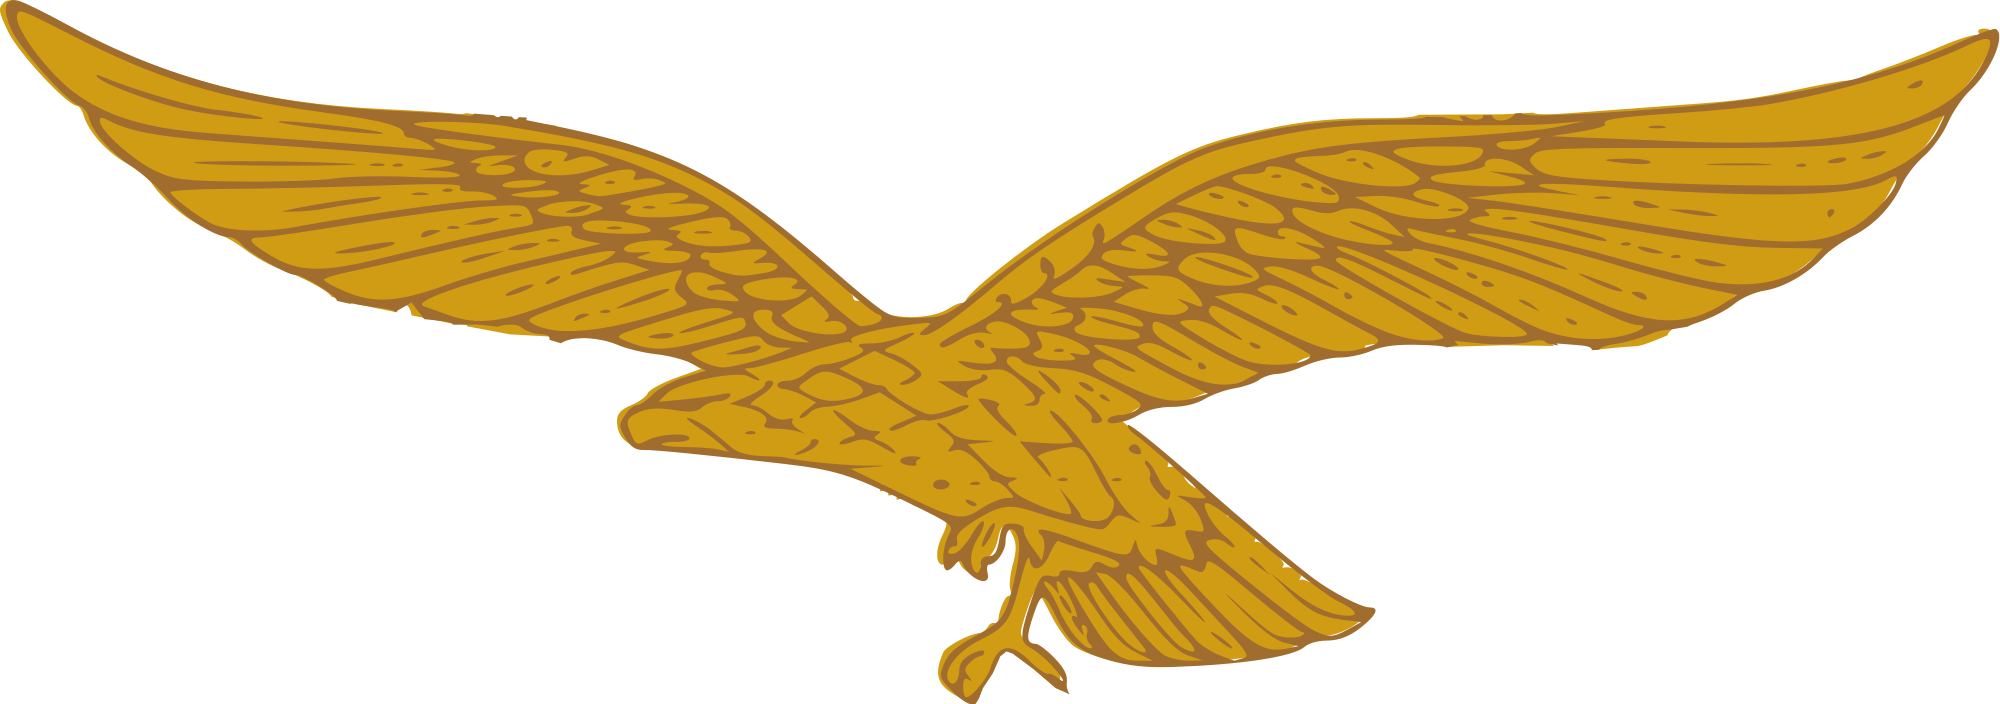 Golden Eagle svg #7, Download drawings